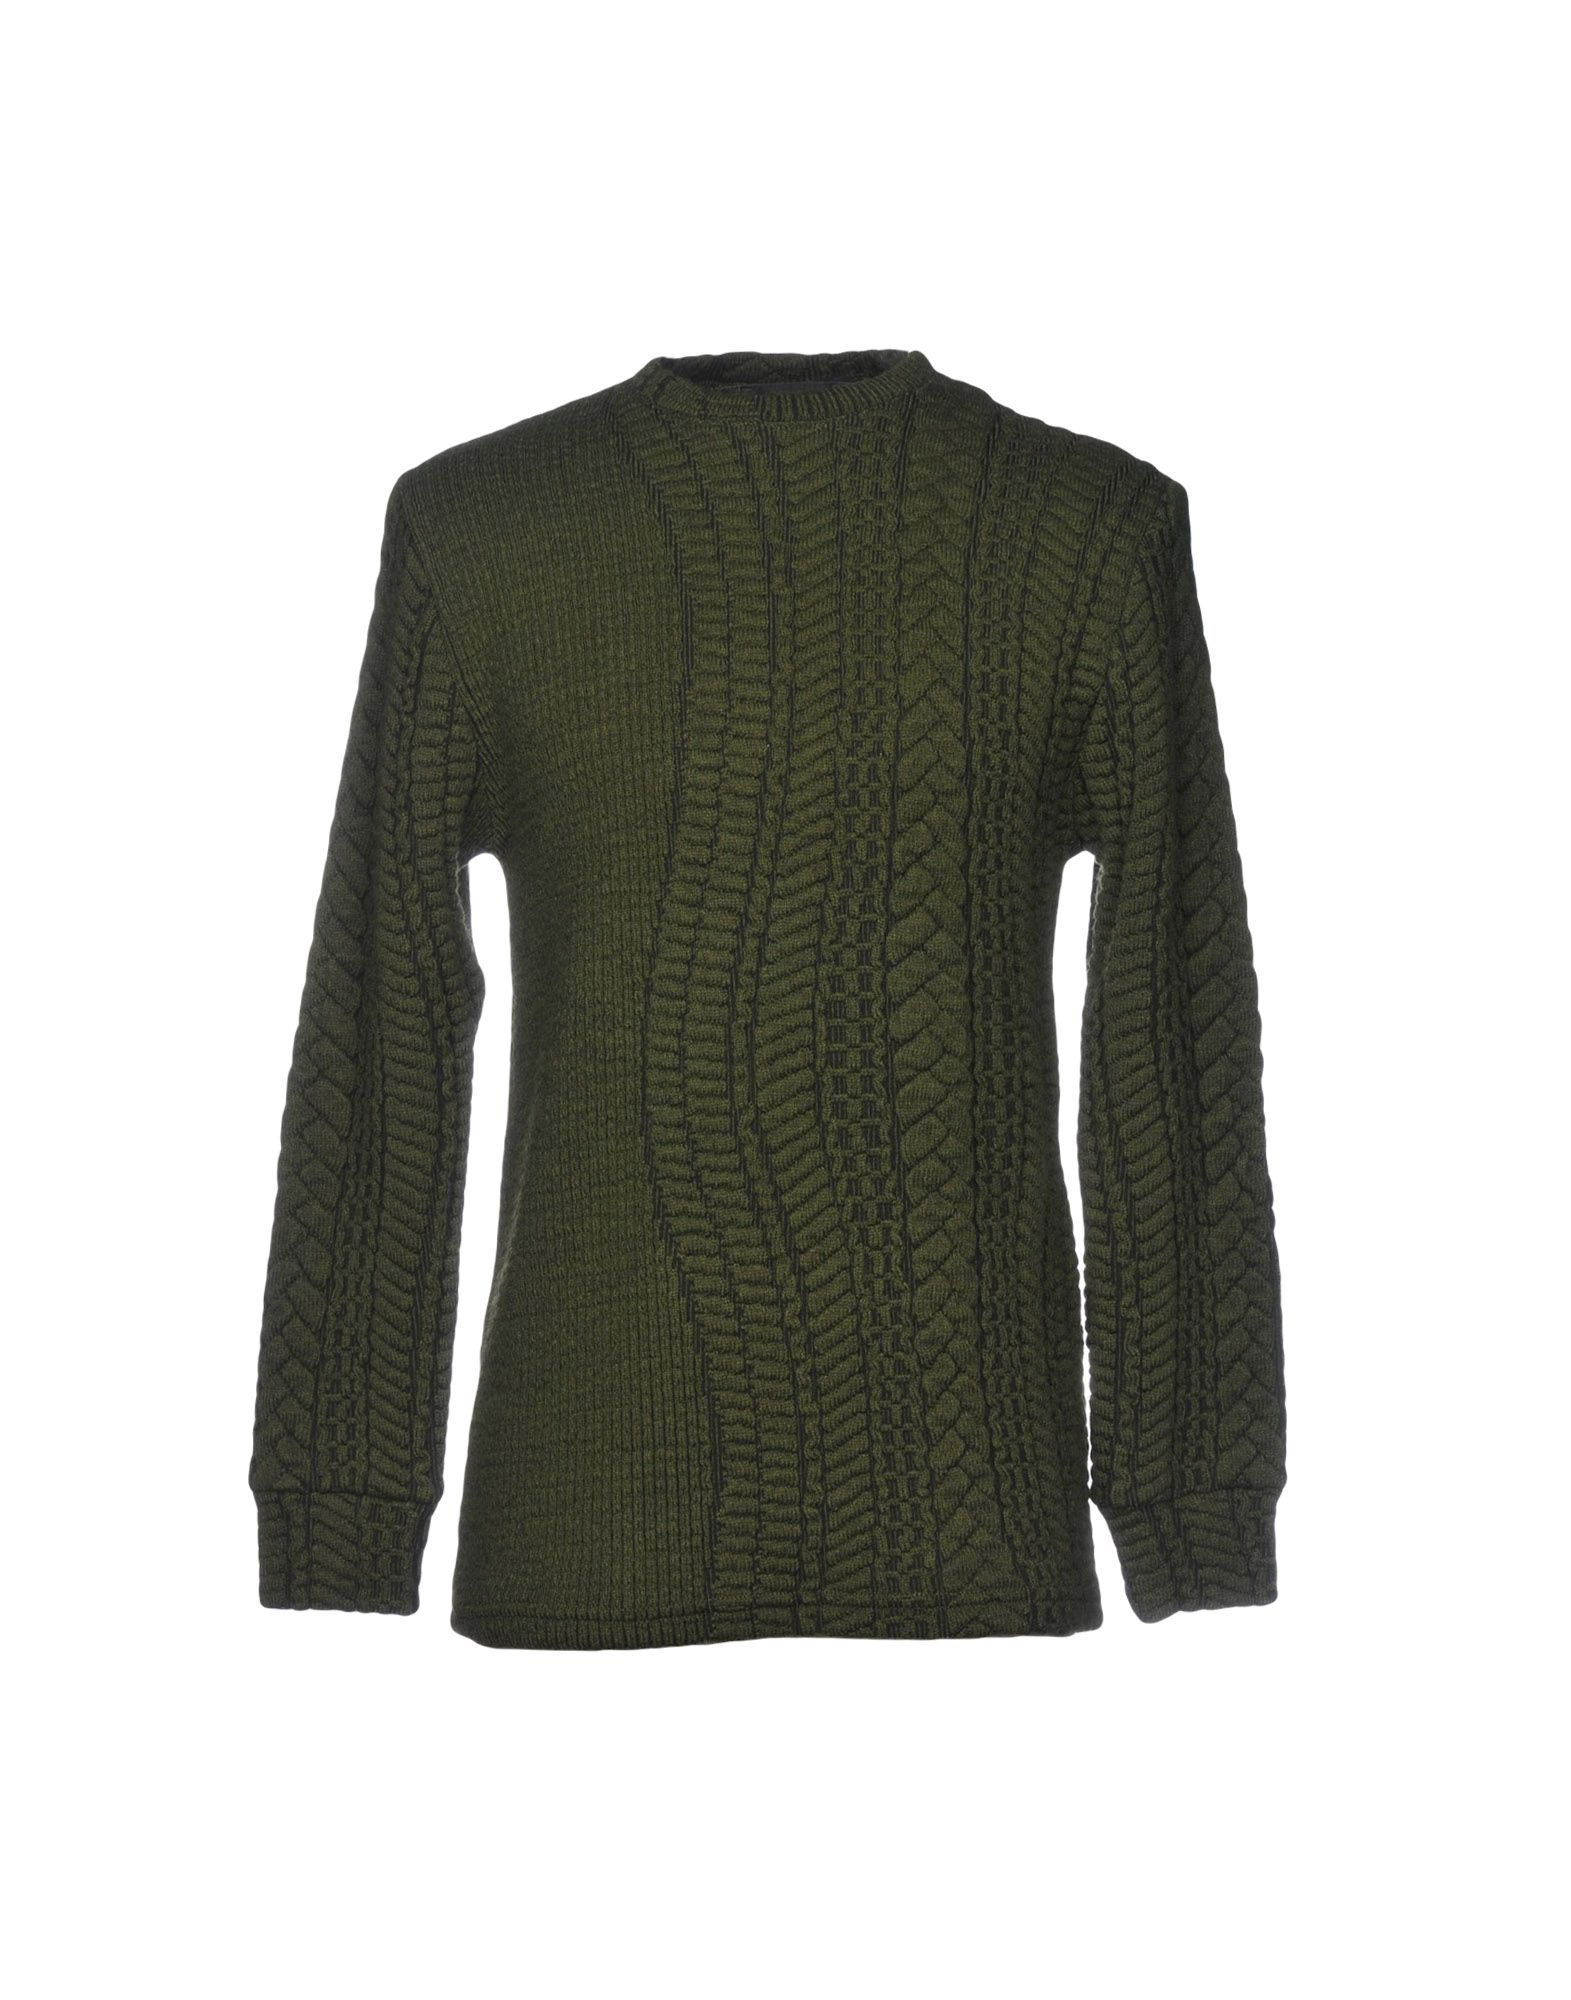 NUMERO00 Sweater in Military Green